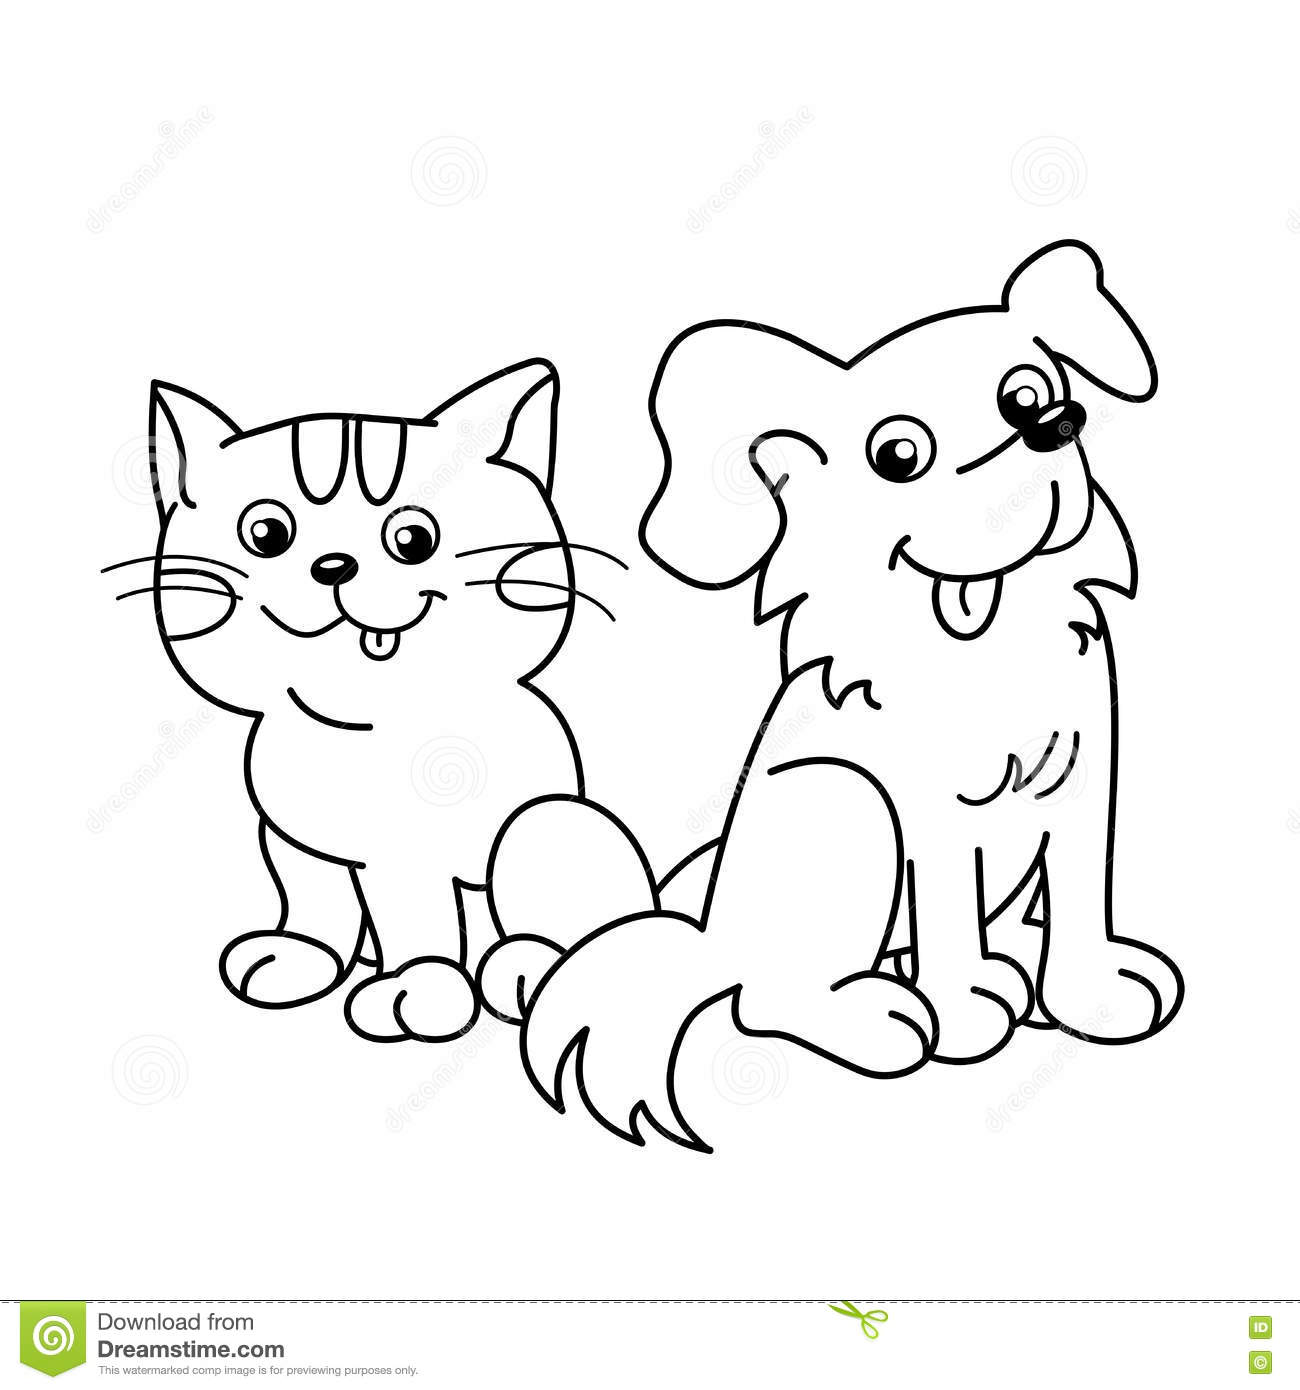 coloring page outline of cartoon cat with dog pets coloring book